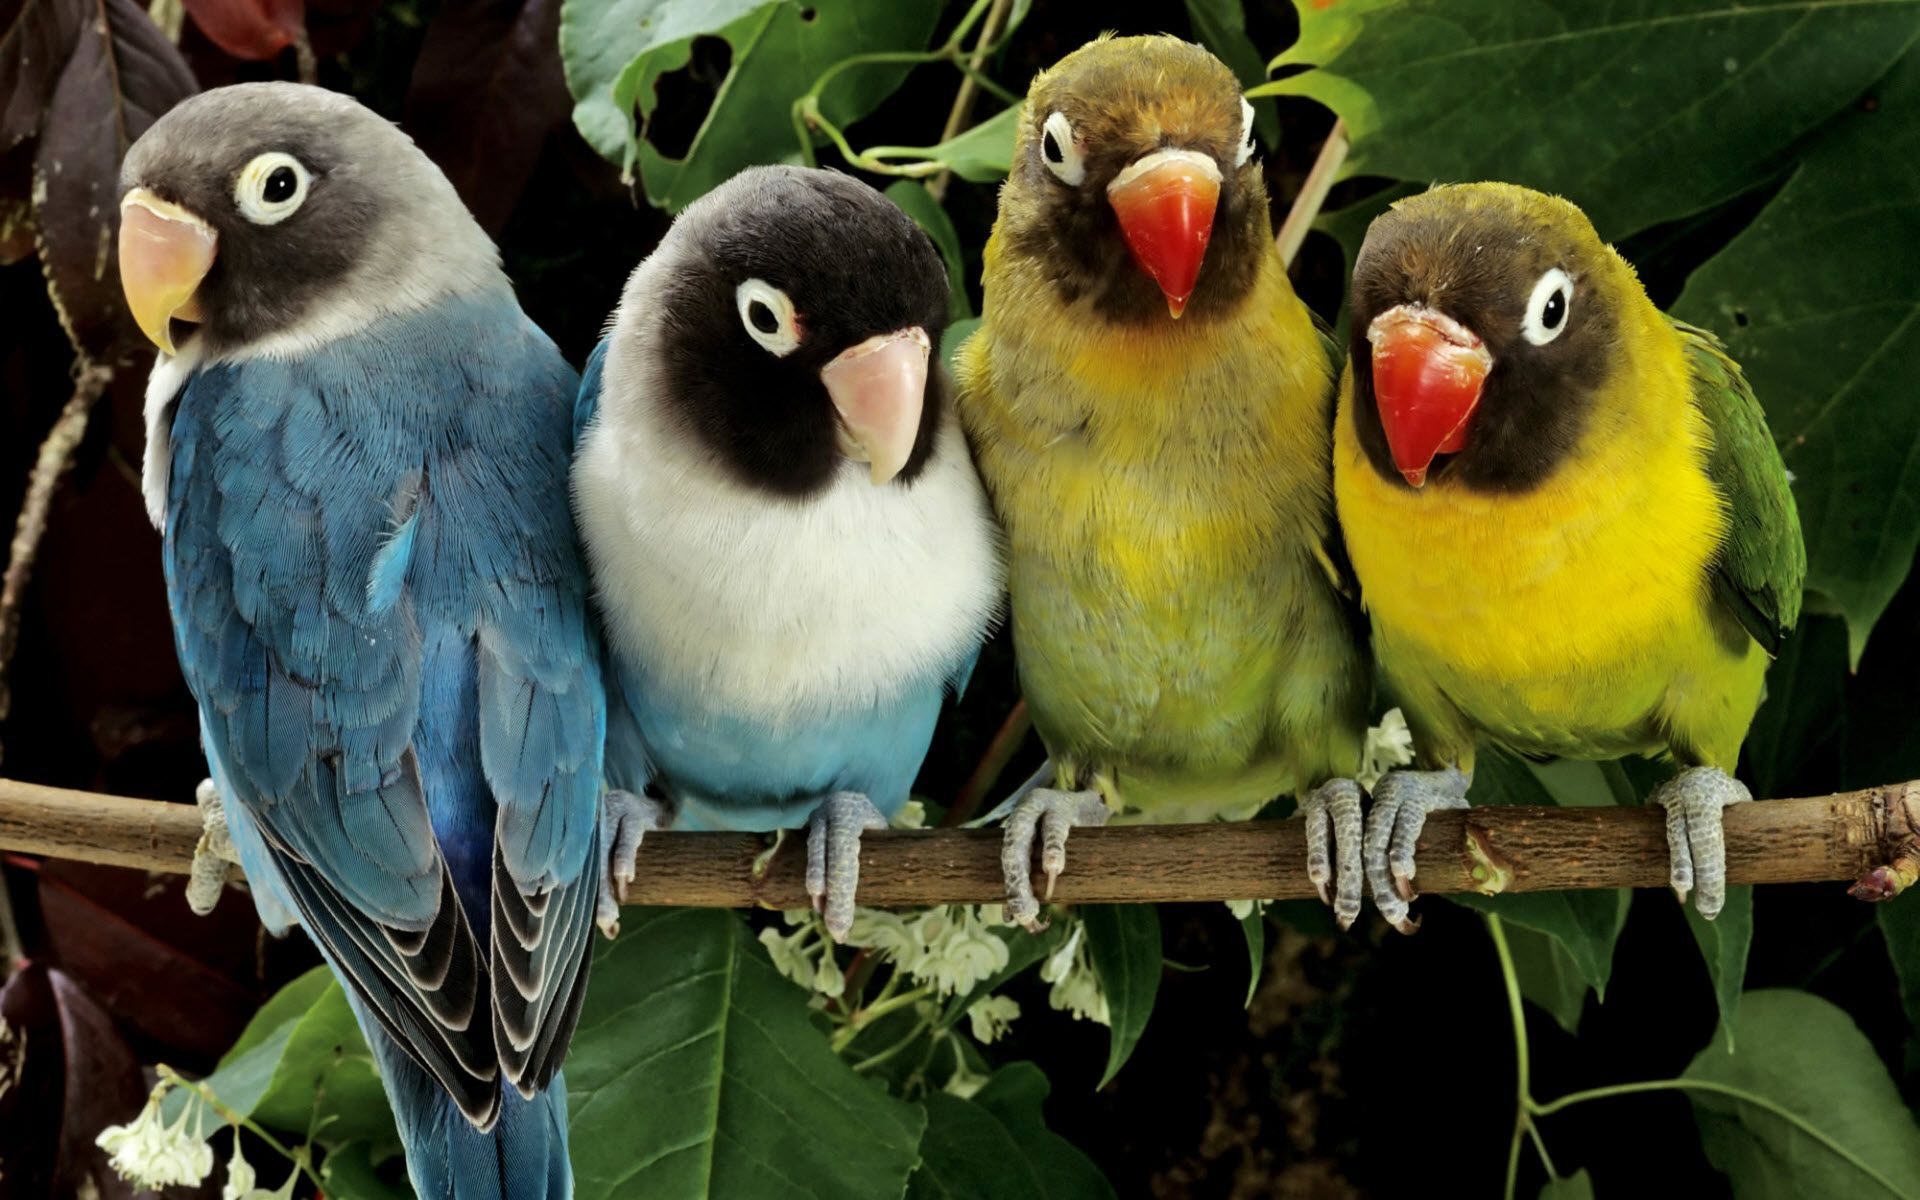 WWW Love Birds Wallpapers Com